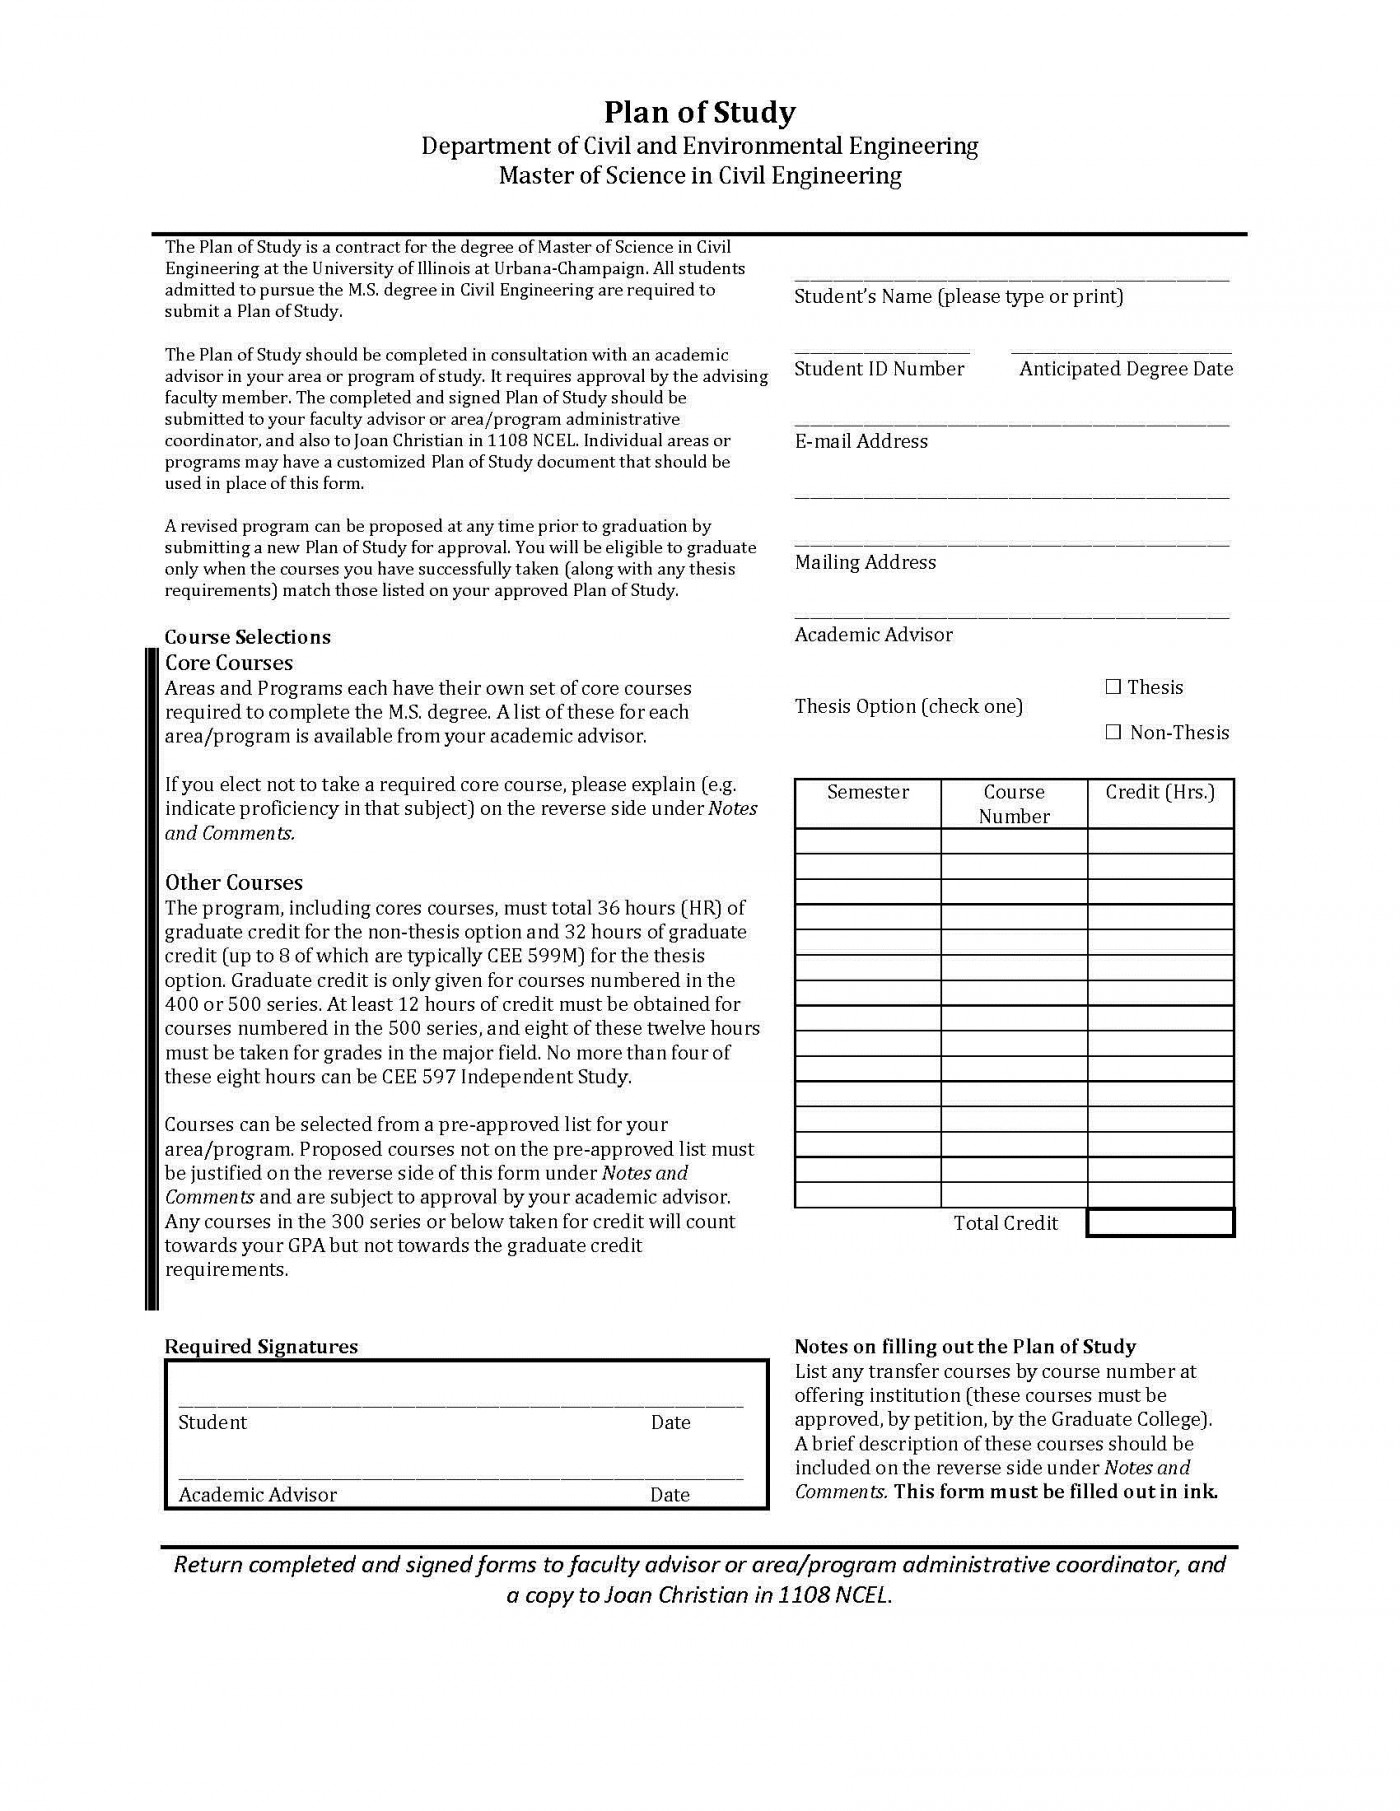 018 Plan Of Study Research Paper Awesome Form Format Apa Scientific Example 1400